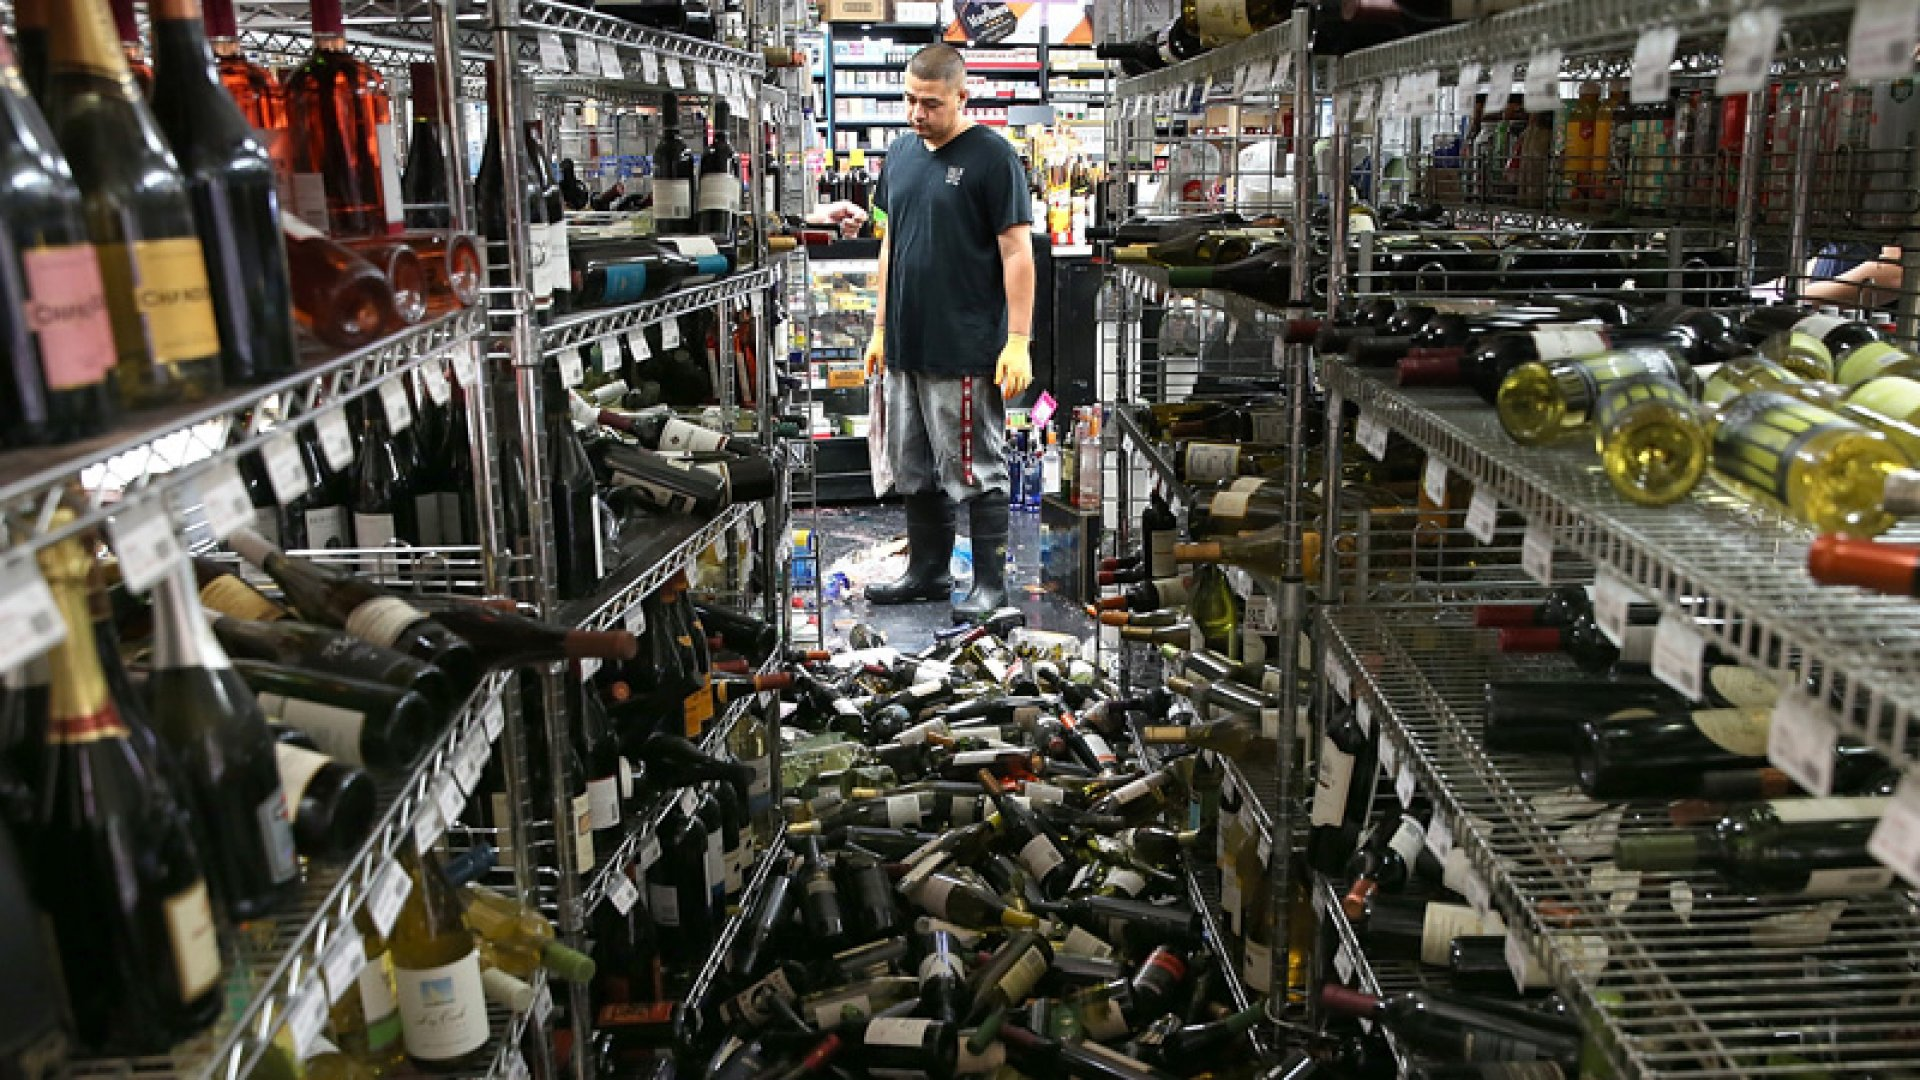 A worker looks at a pile of wine bottles that were thrown from the shelves at Van's Liquors following a reported 6.0 earthquake on Sunday.